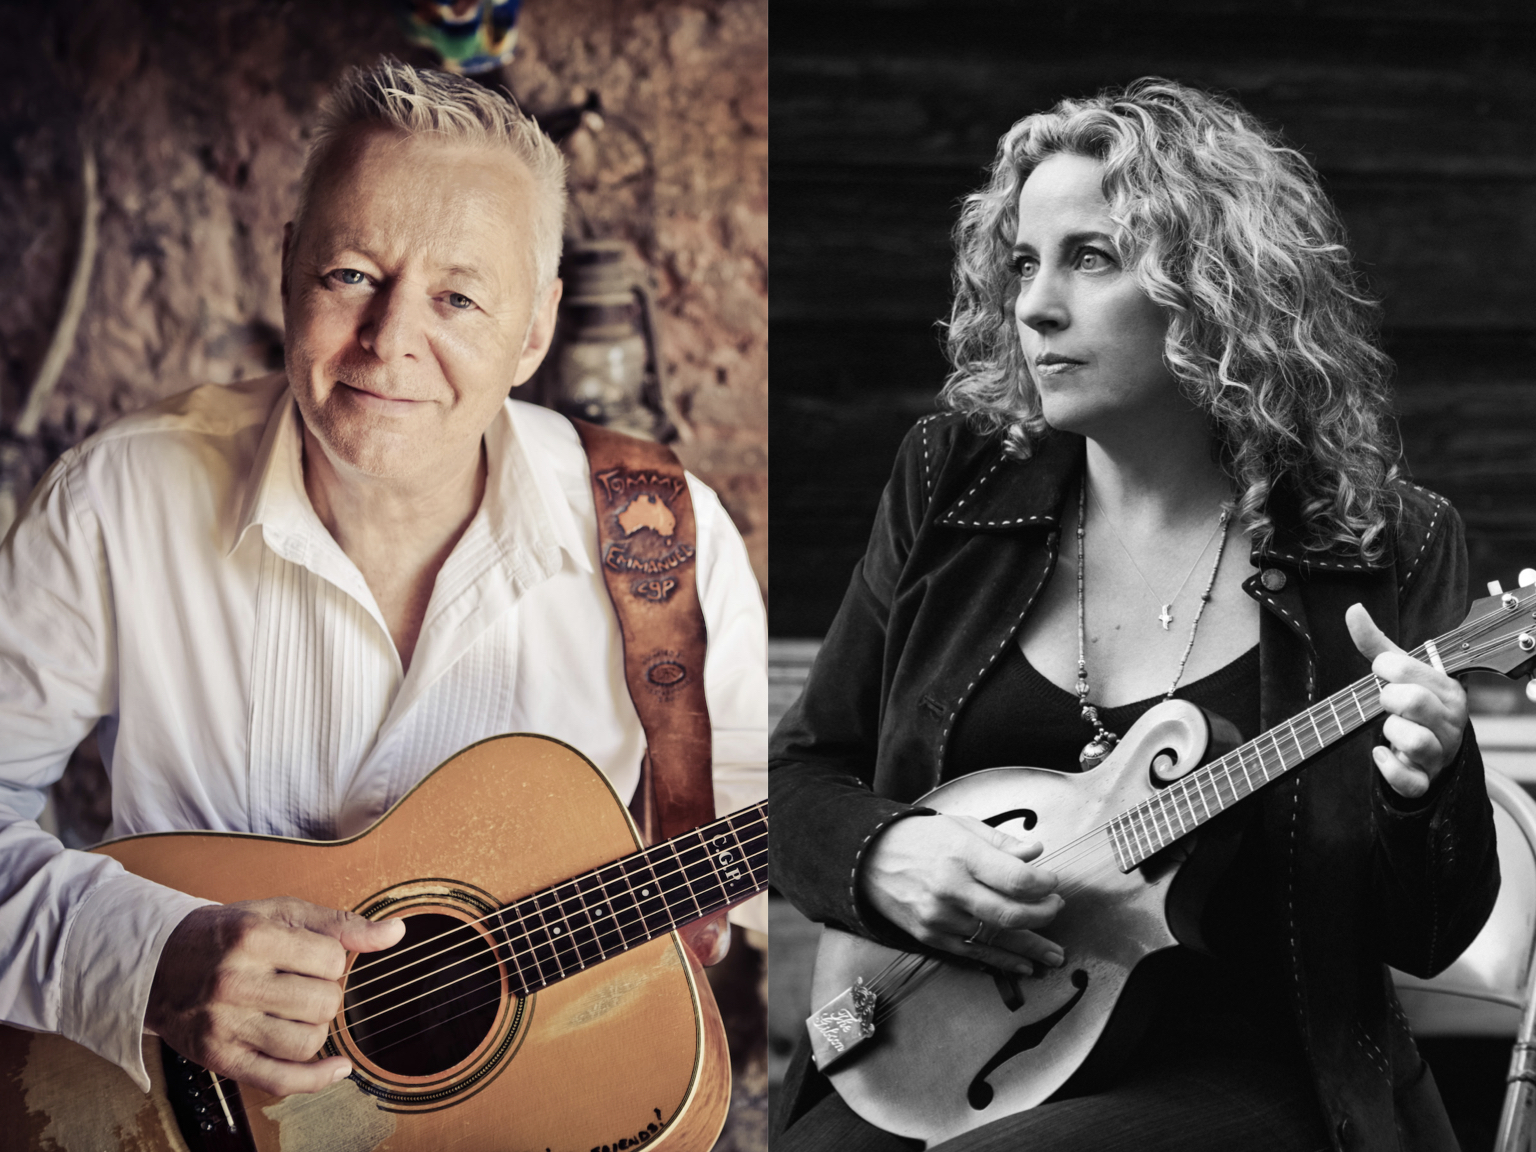 GE Smith presents PORTRAITS featuring Tommy Emmanuel and Amy Helm